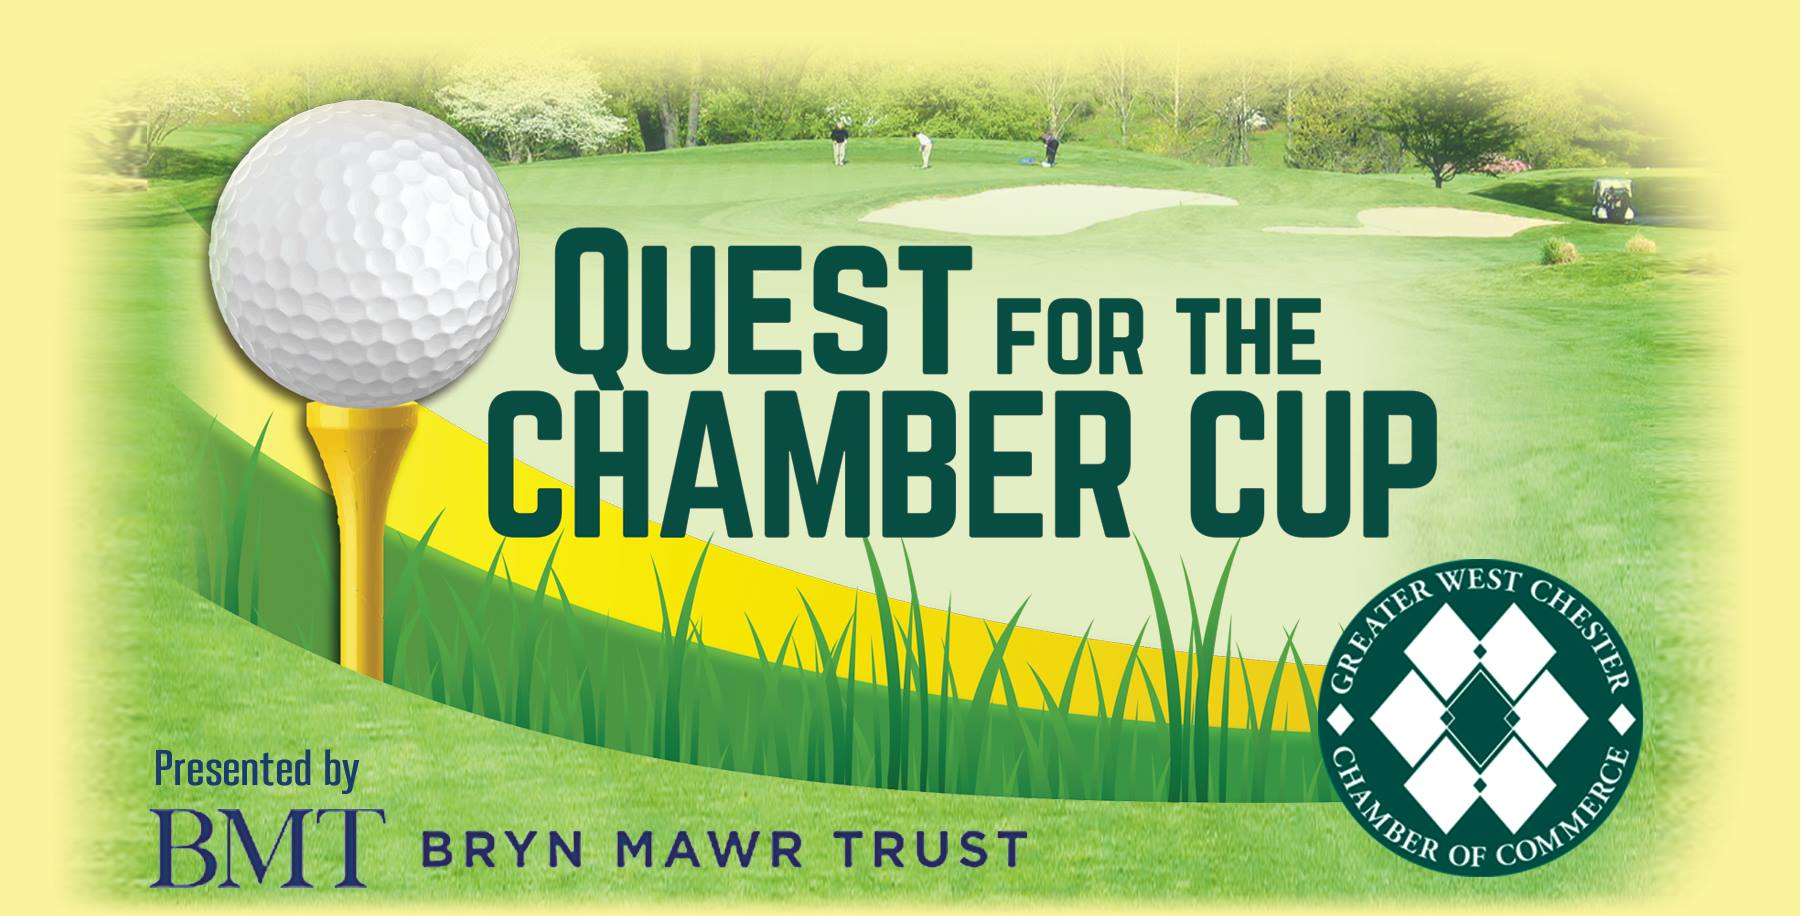 Registration Opens for GWCC's Quest for the Chamber Cup Golf Outing